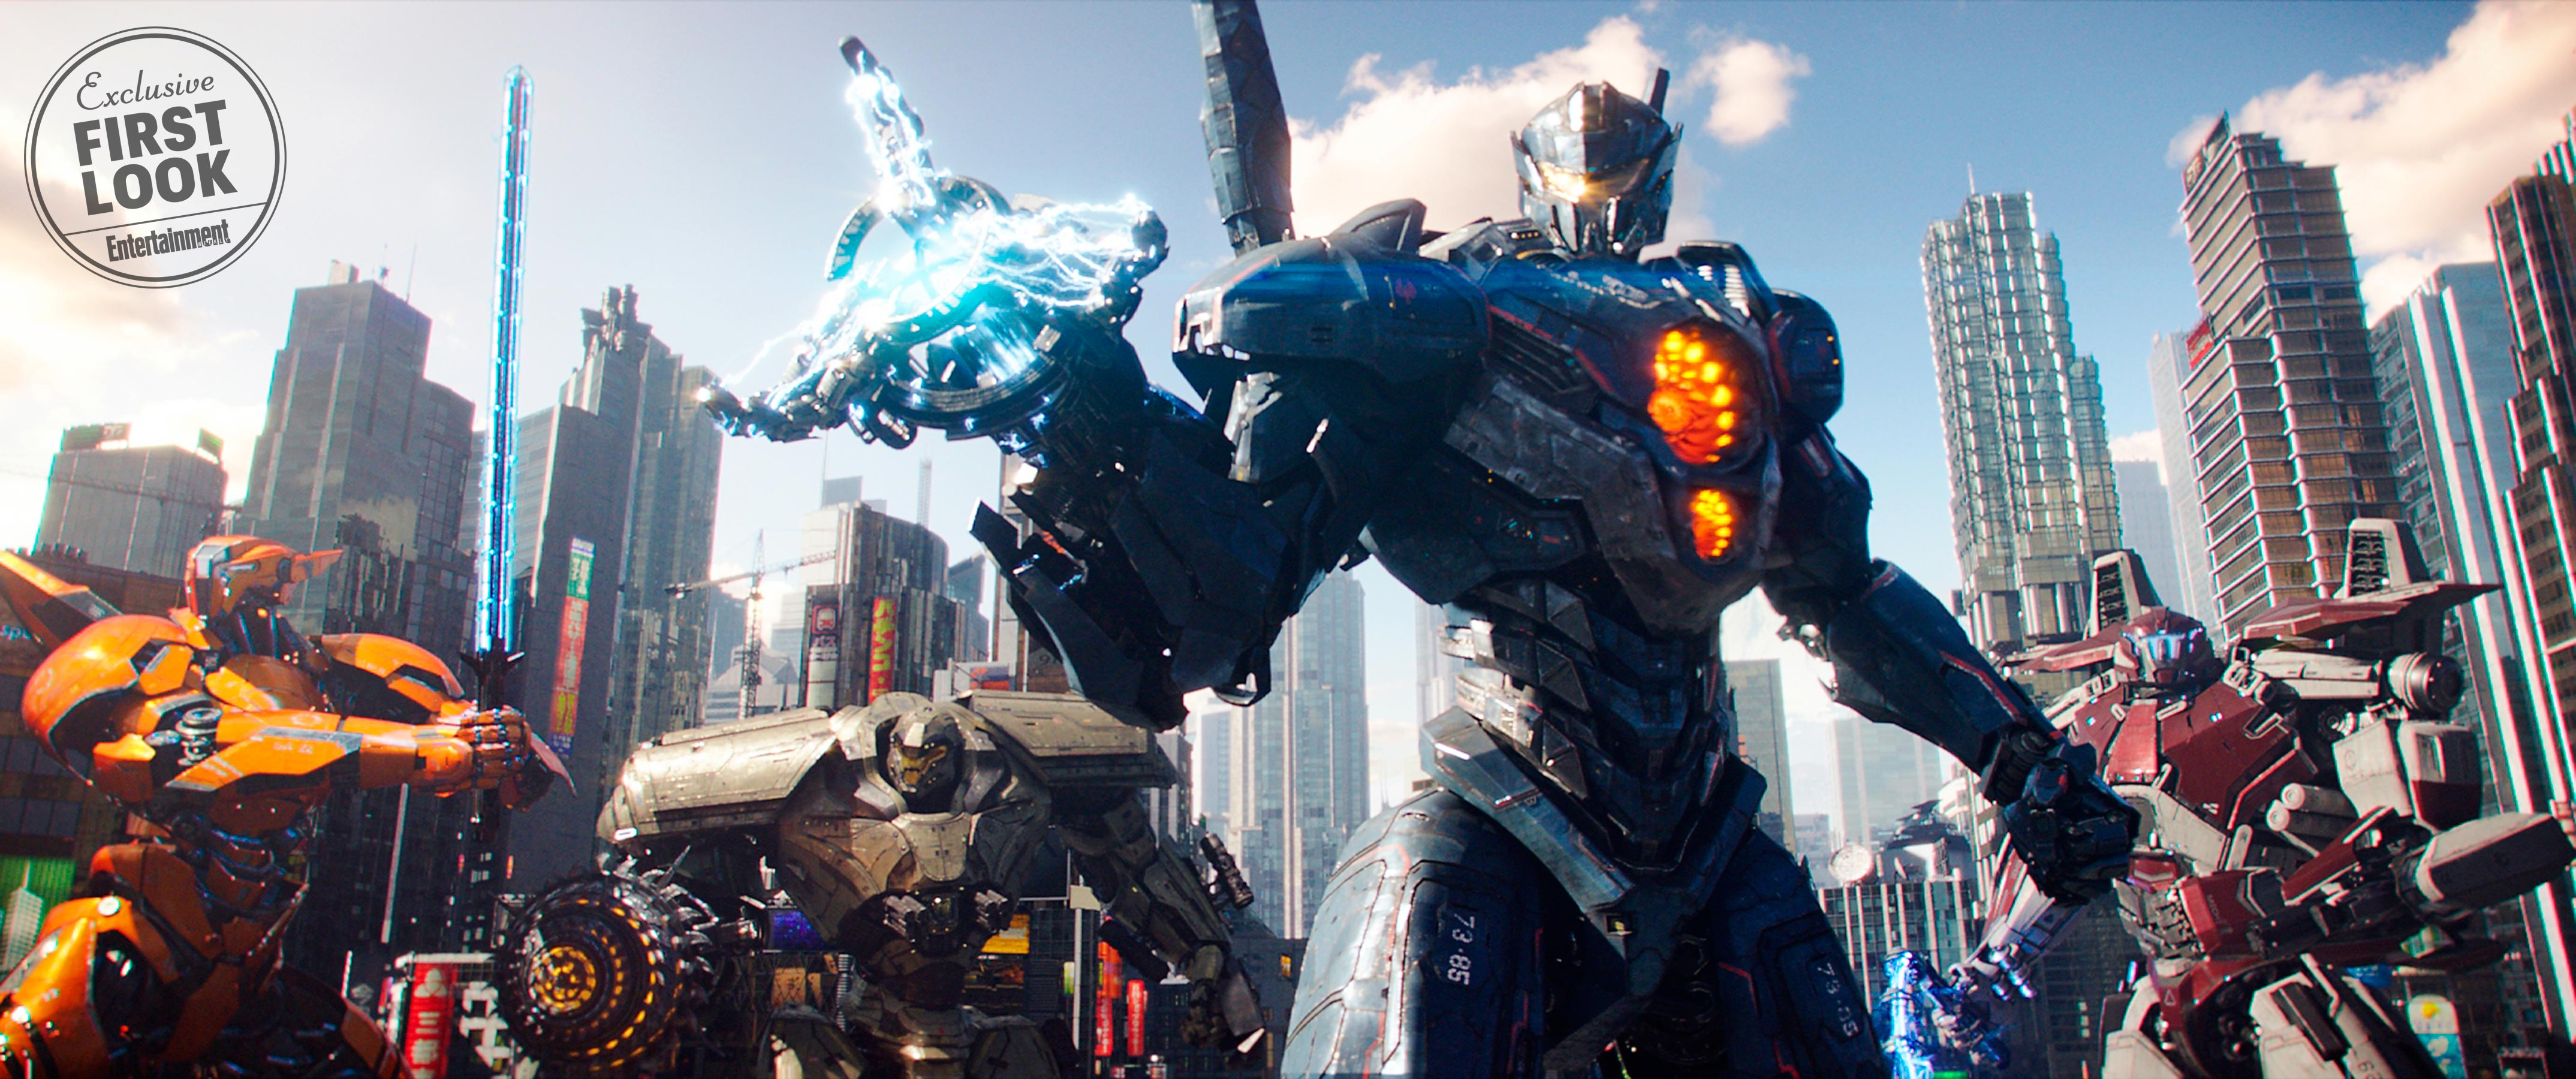 New Hd Photos Of Pacific Rim Uprising Jaegers Released Pacific